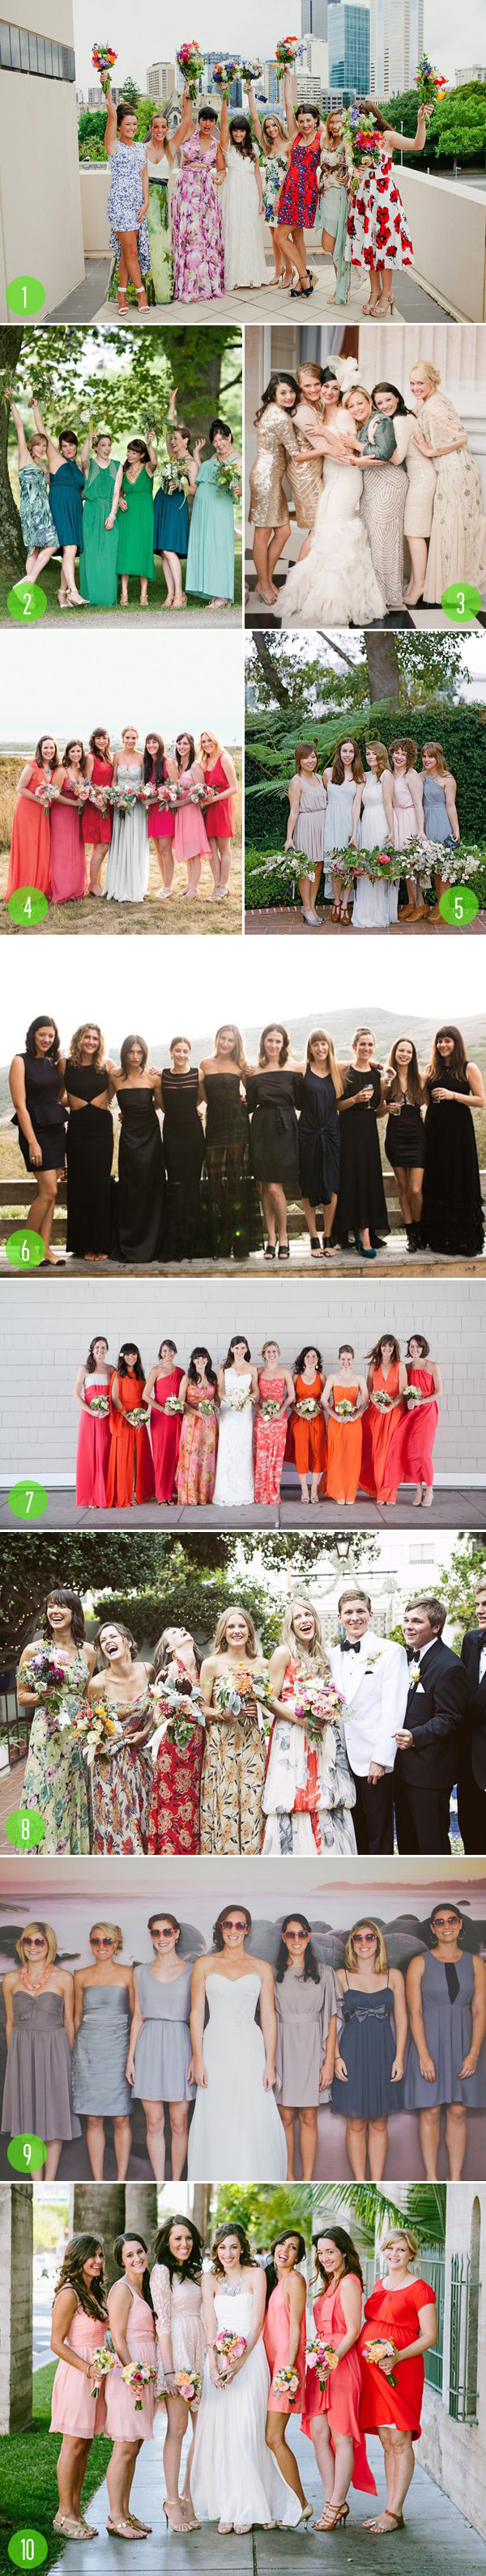 top 10: mismatch bridesmaids